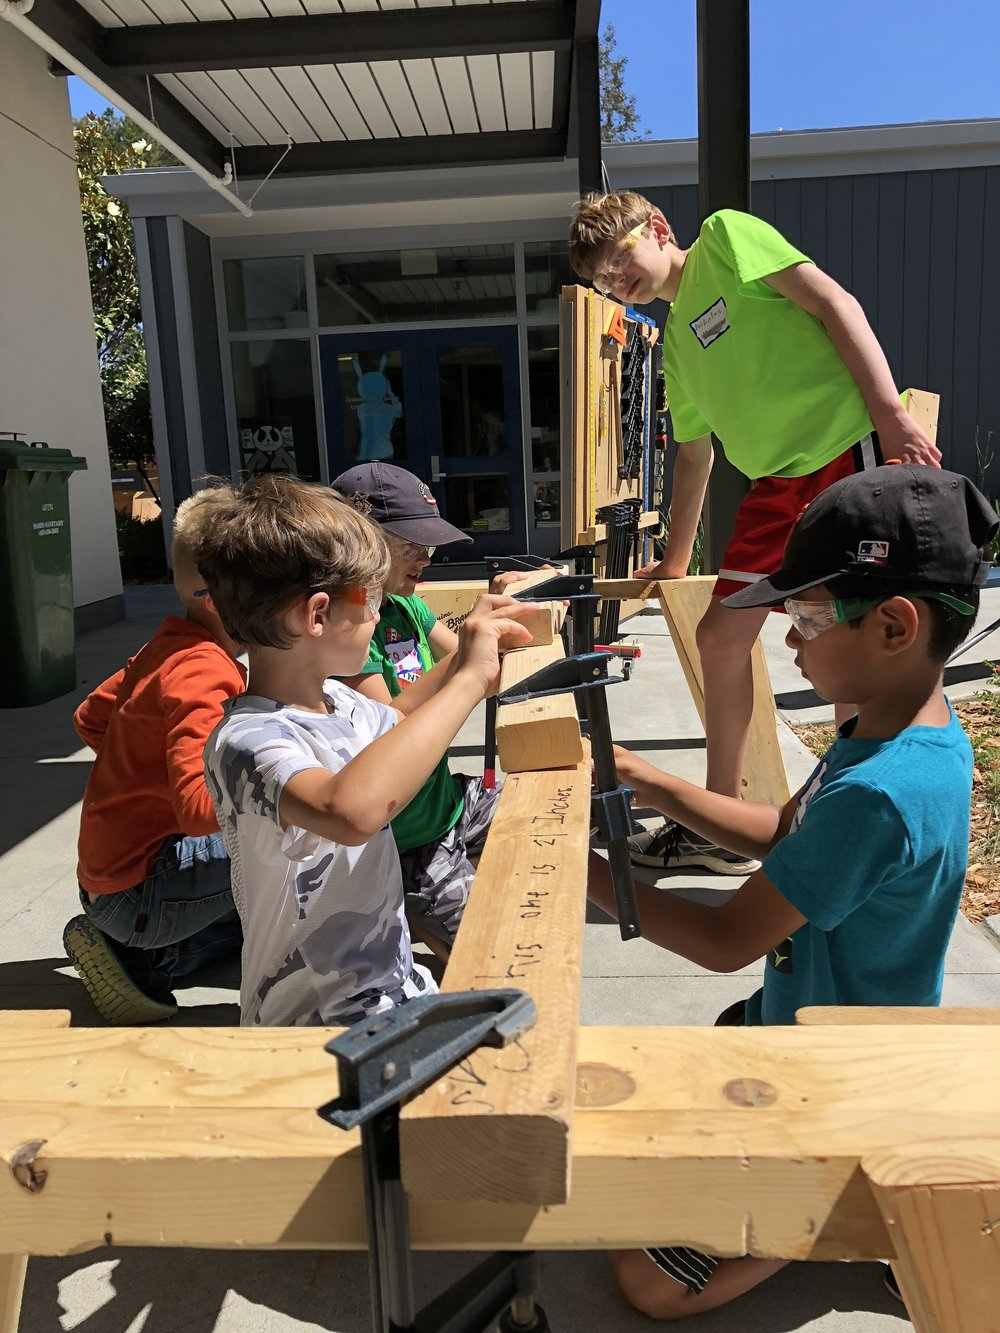 During clamp training, students were challenged to build a bridge to span a distance. Teamwork was essential with one person holding the wood and one person operating the clamp.